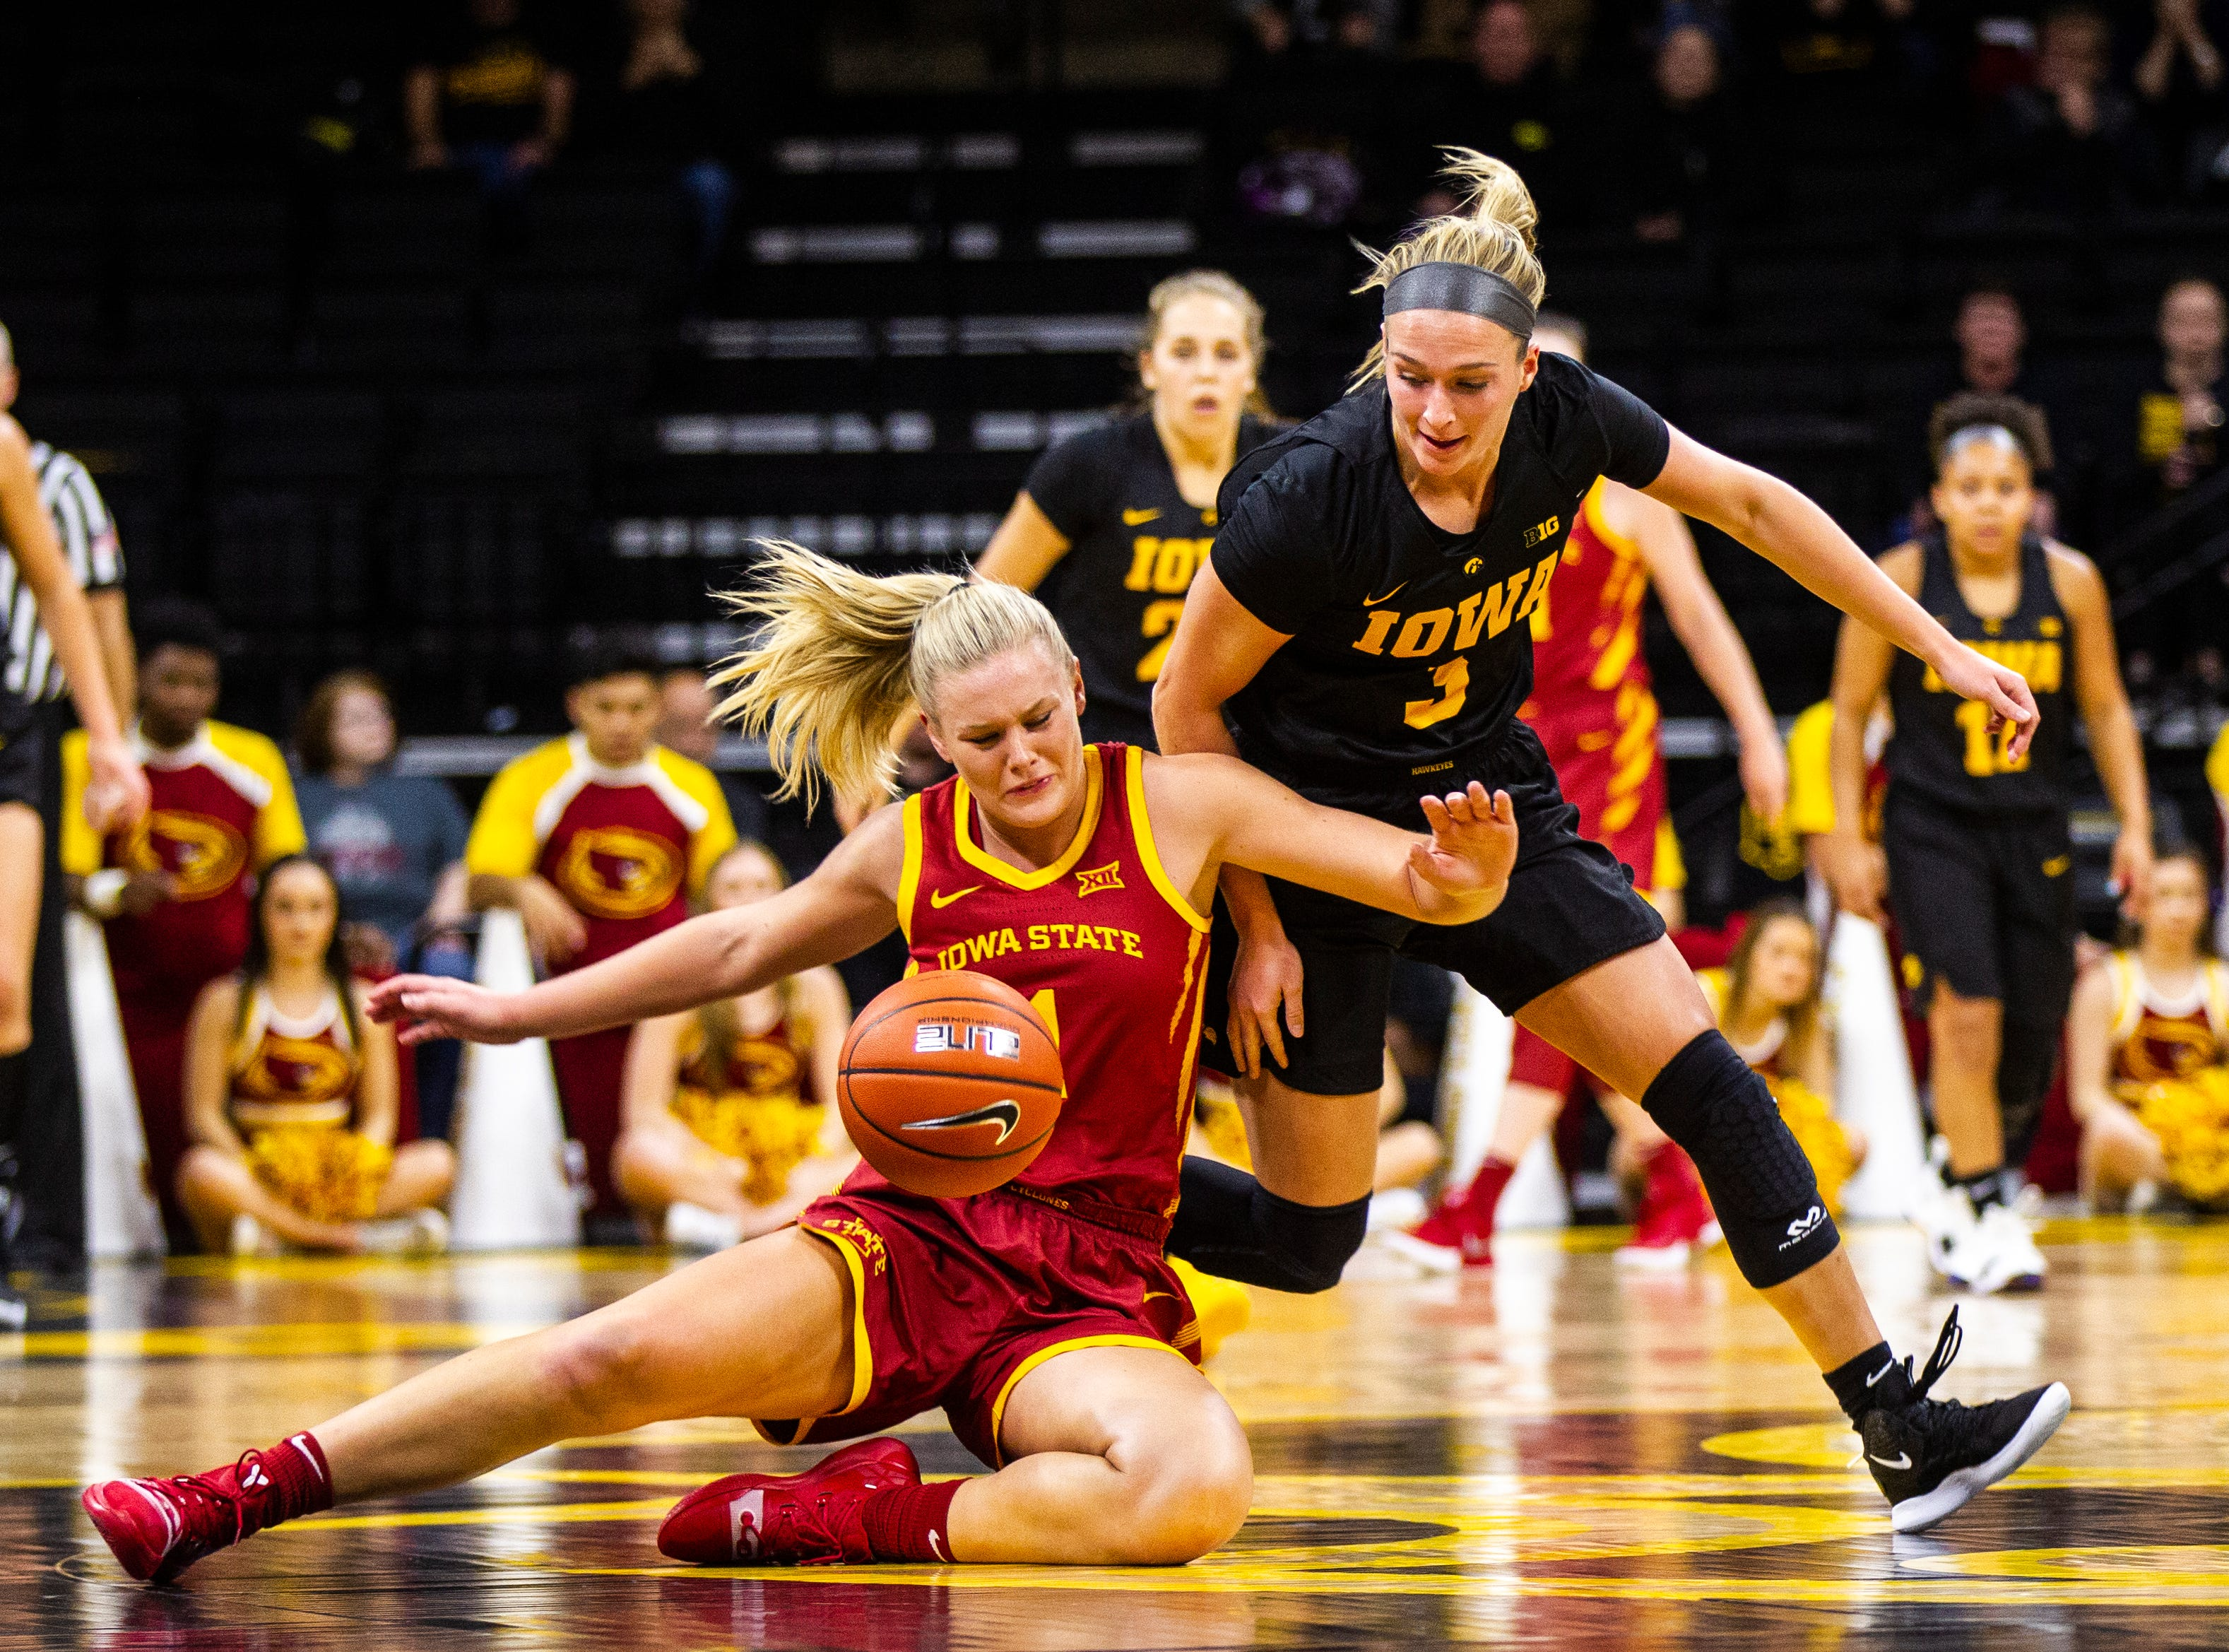 Iowa State forward Madison Wise (1) and Iowa guard Makenzie Meyer (3) wrestle for a loose ball during a Cy-Hawk series NCAA women's basketball game on Wednesday, Dec. 5, 2018, at Carver-Hawkeye Arena in Iowa City.